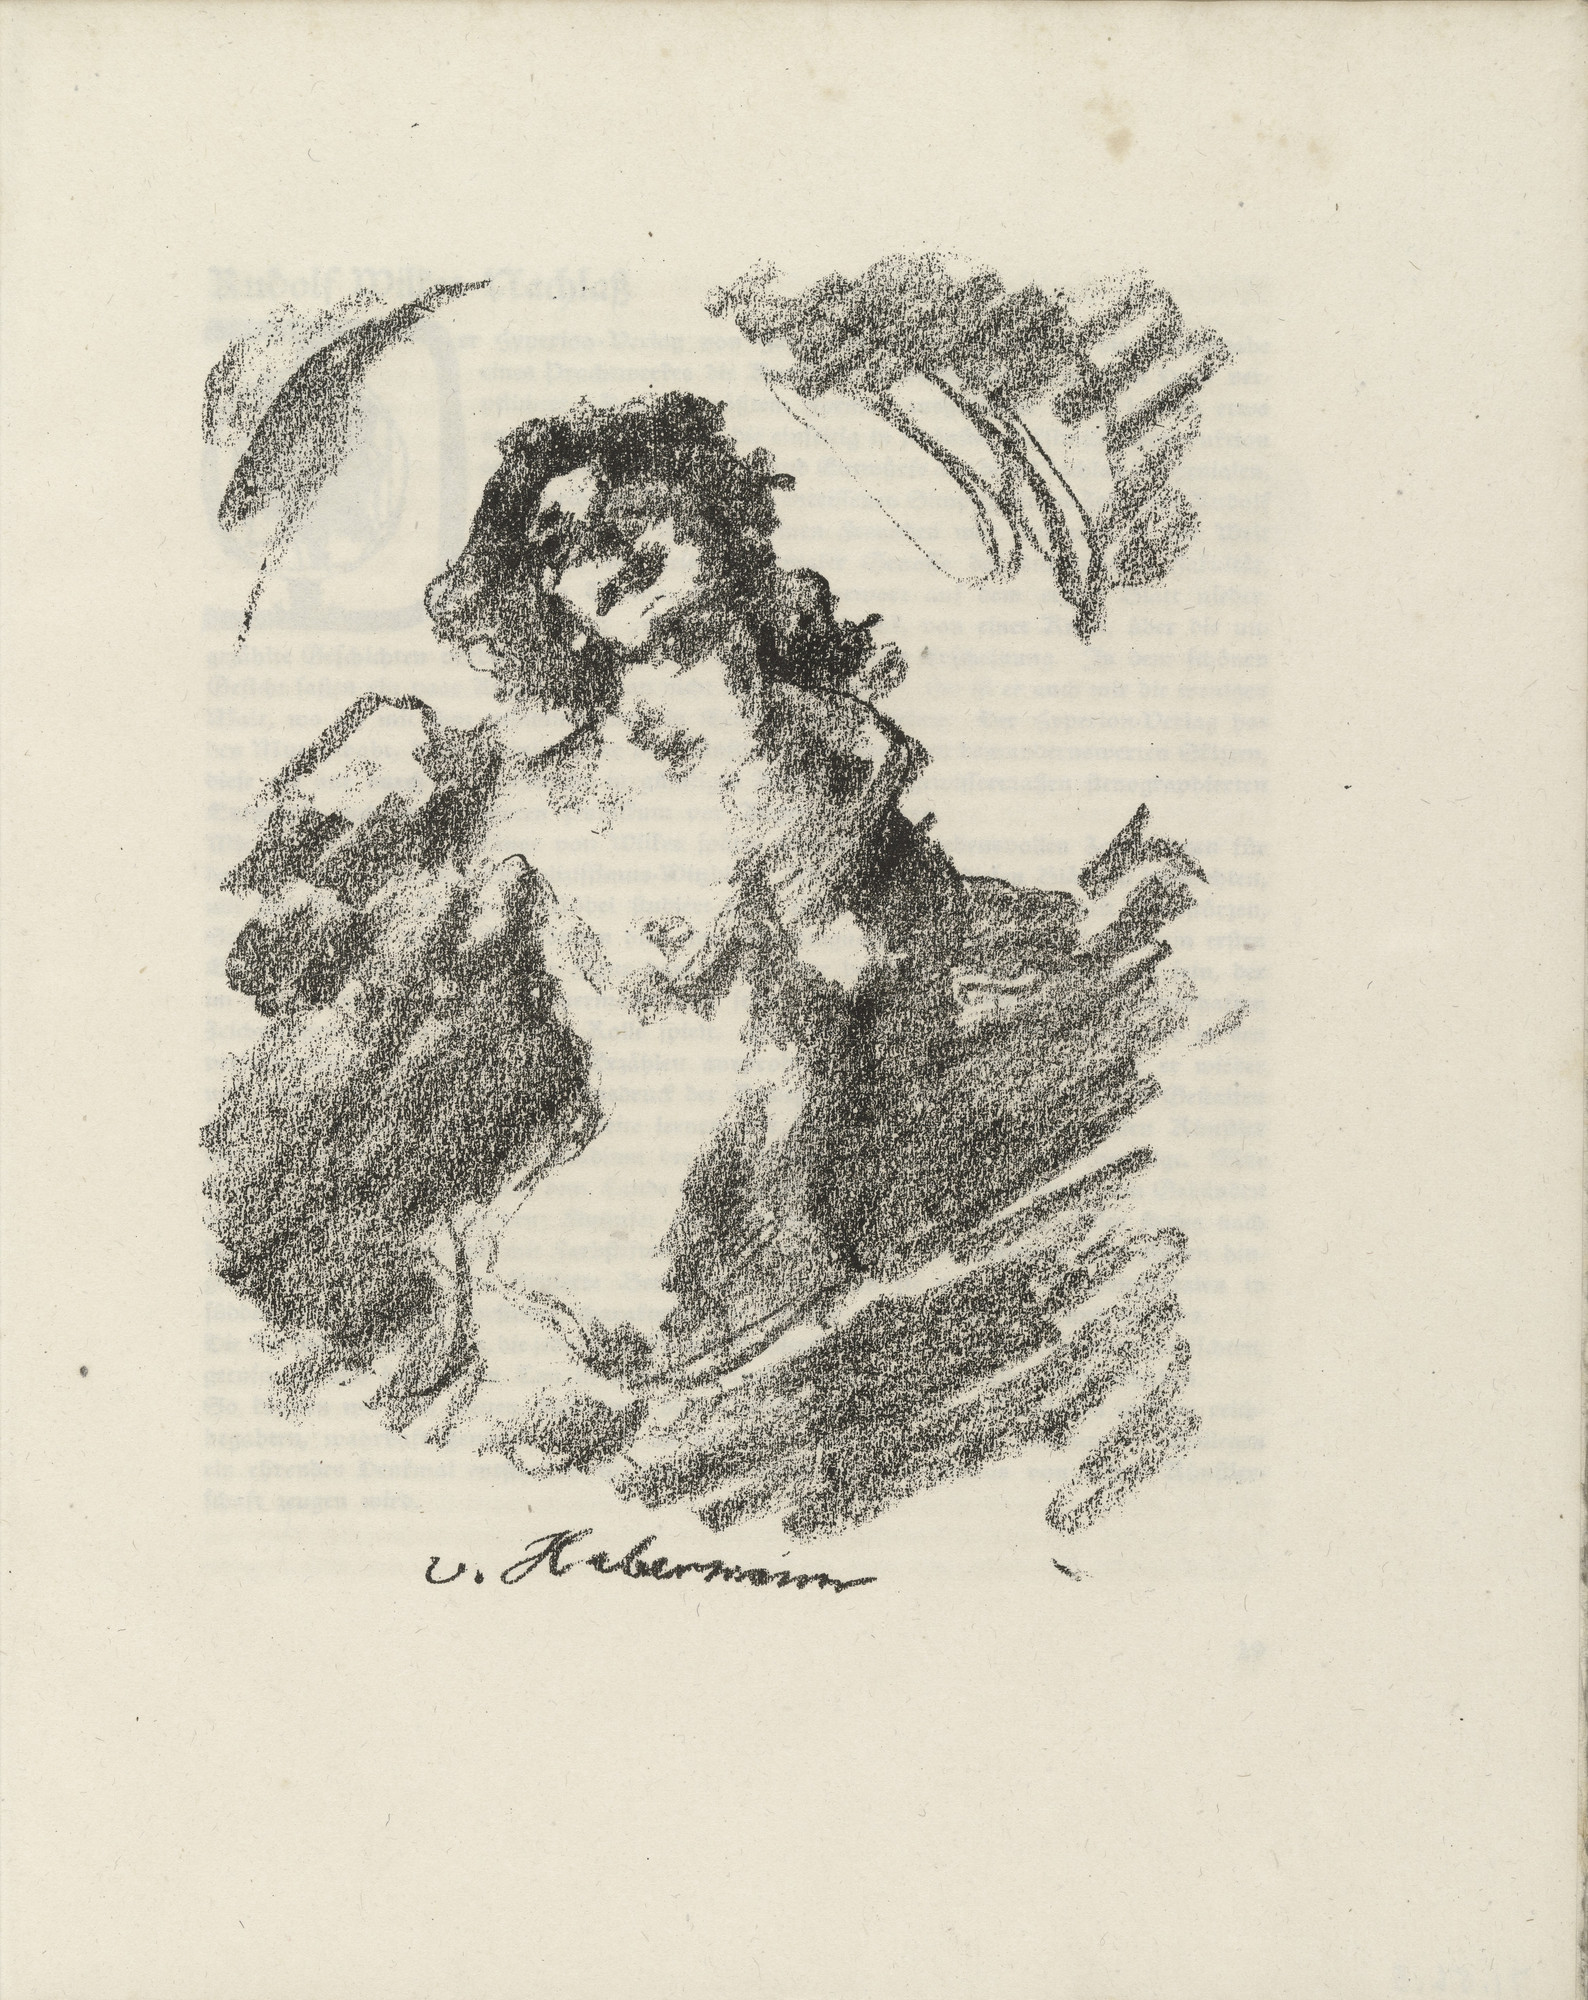 Lovis Corinth. Female Half Nude (Weiblicher Halbakt) (plate facing page 28) from Gesammelte Schriften (Collected Writings). 1920